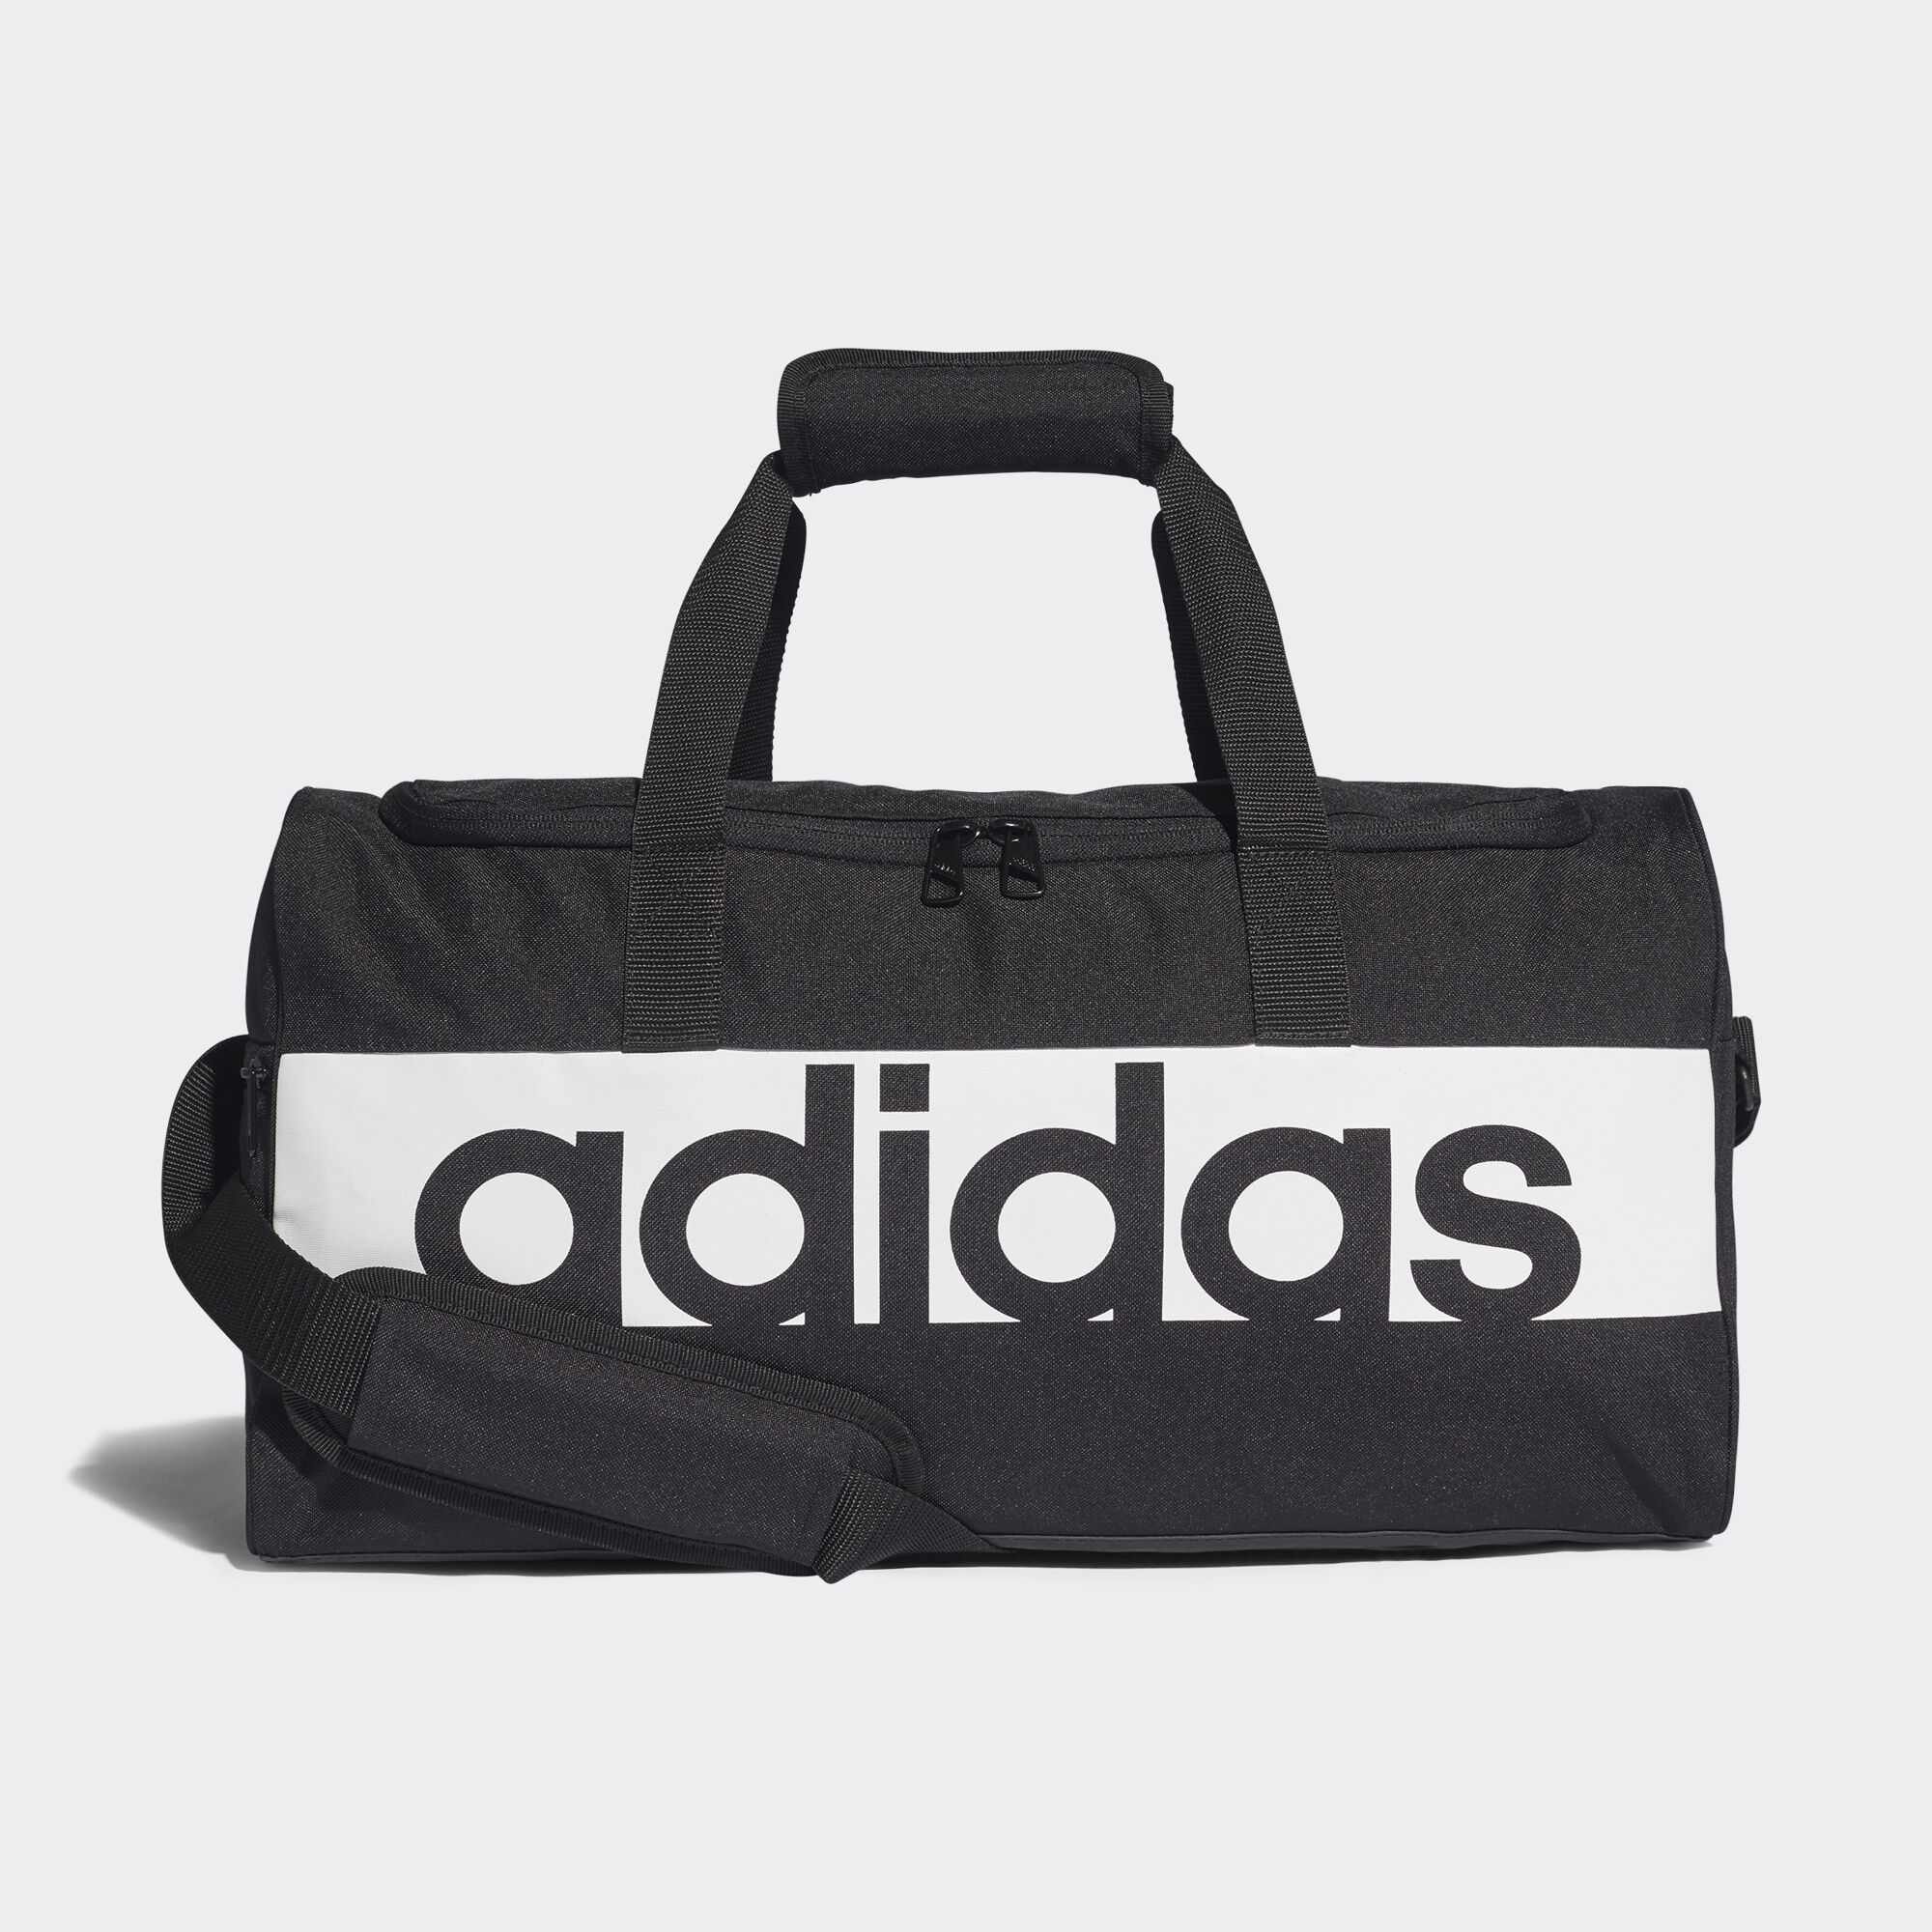 Buy adidas performance bag   OFF71% Discounted c4c7d42e27613